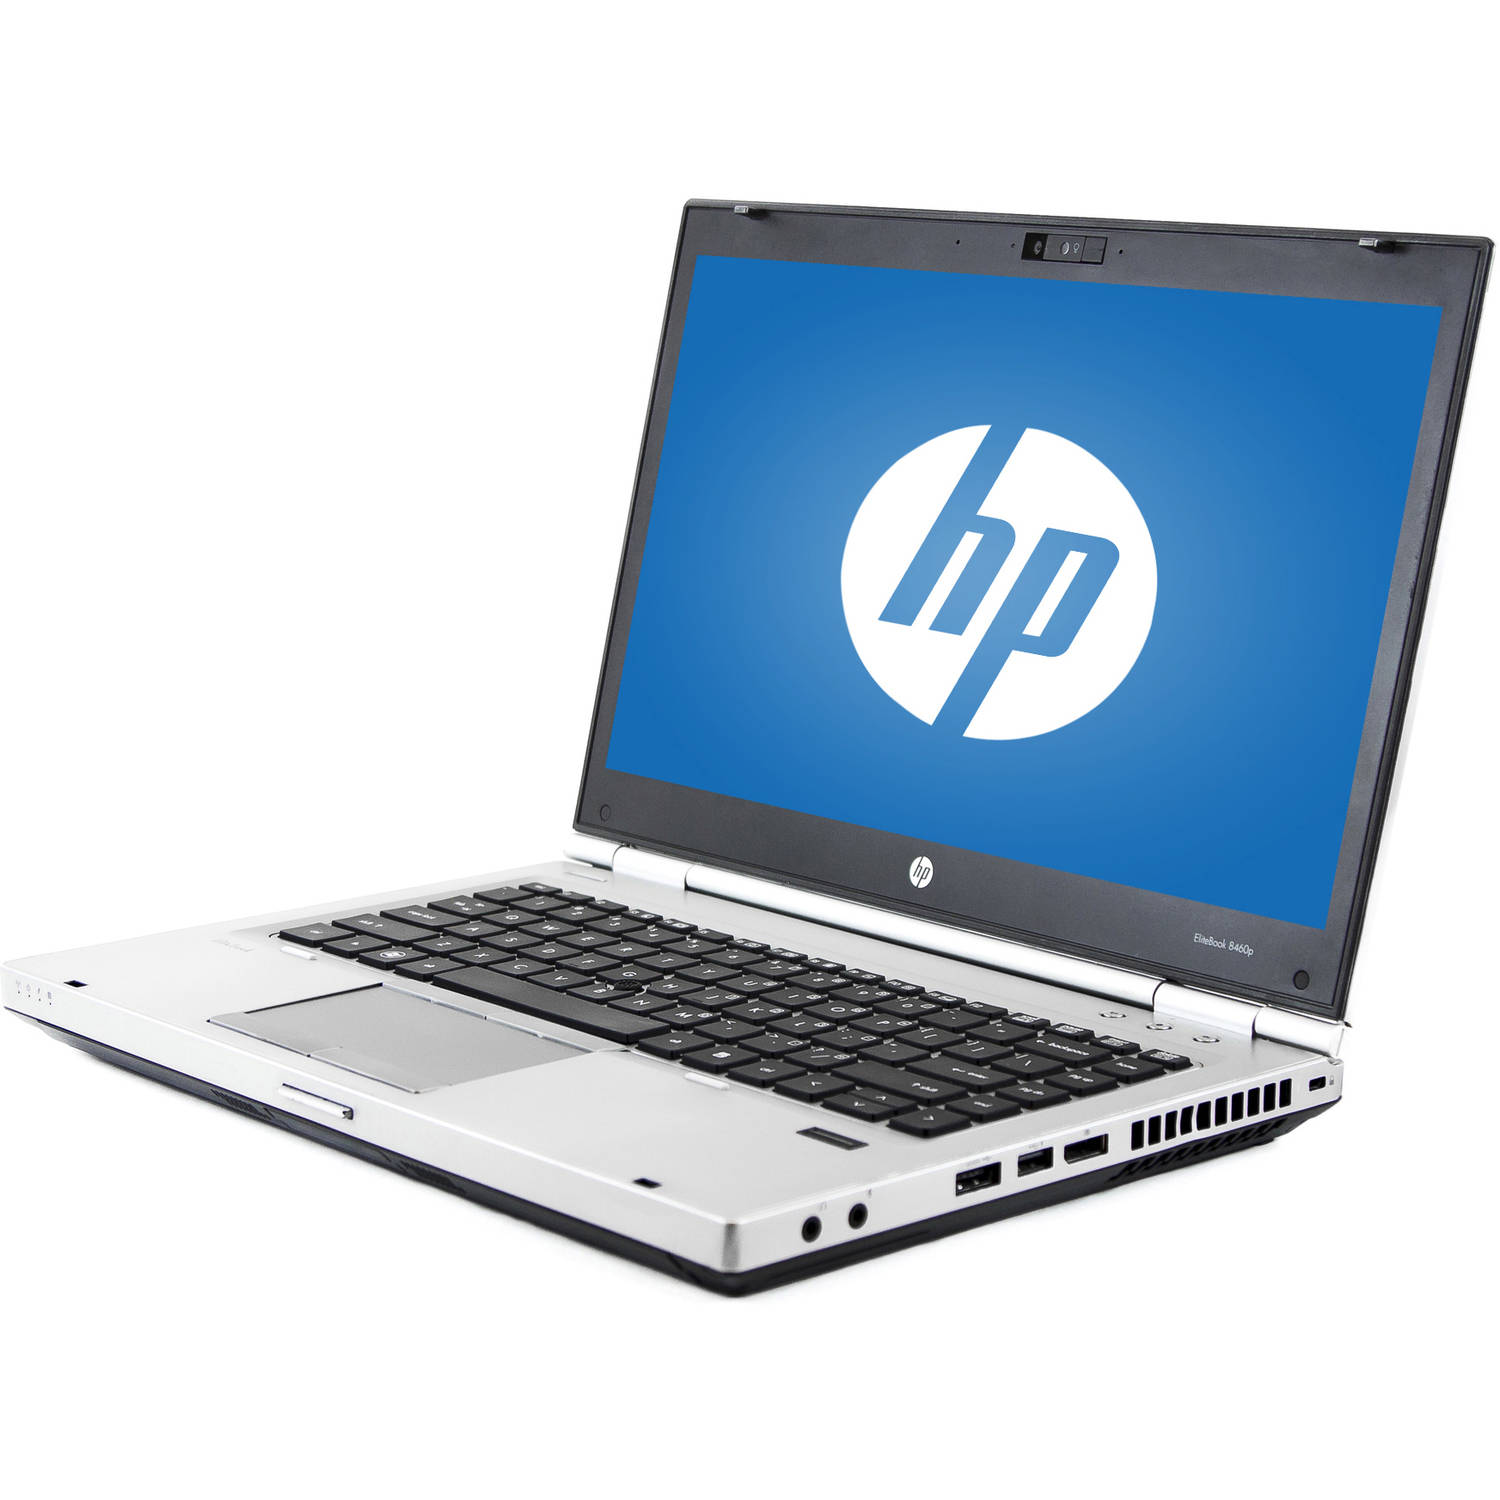 "Refurbished HP Silver 14"" EliteBook 8460P Laptop PC with Intel Core i5 Processor, 4GB Memory, 750GB Hard Drive and Windows 7 Professional"